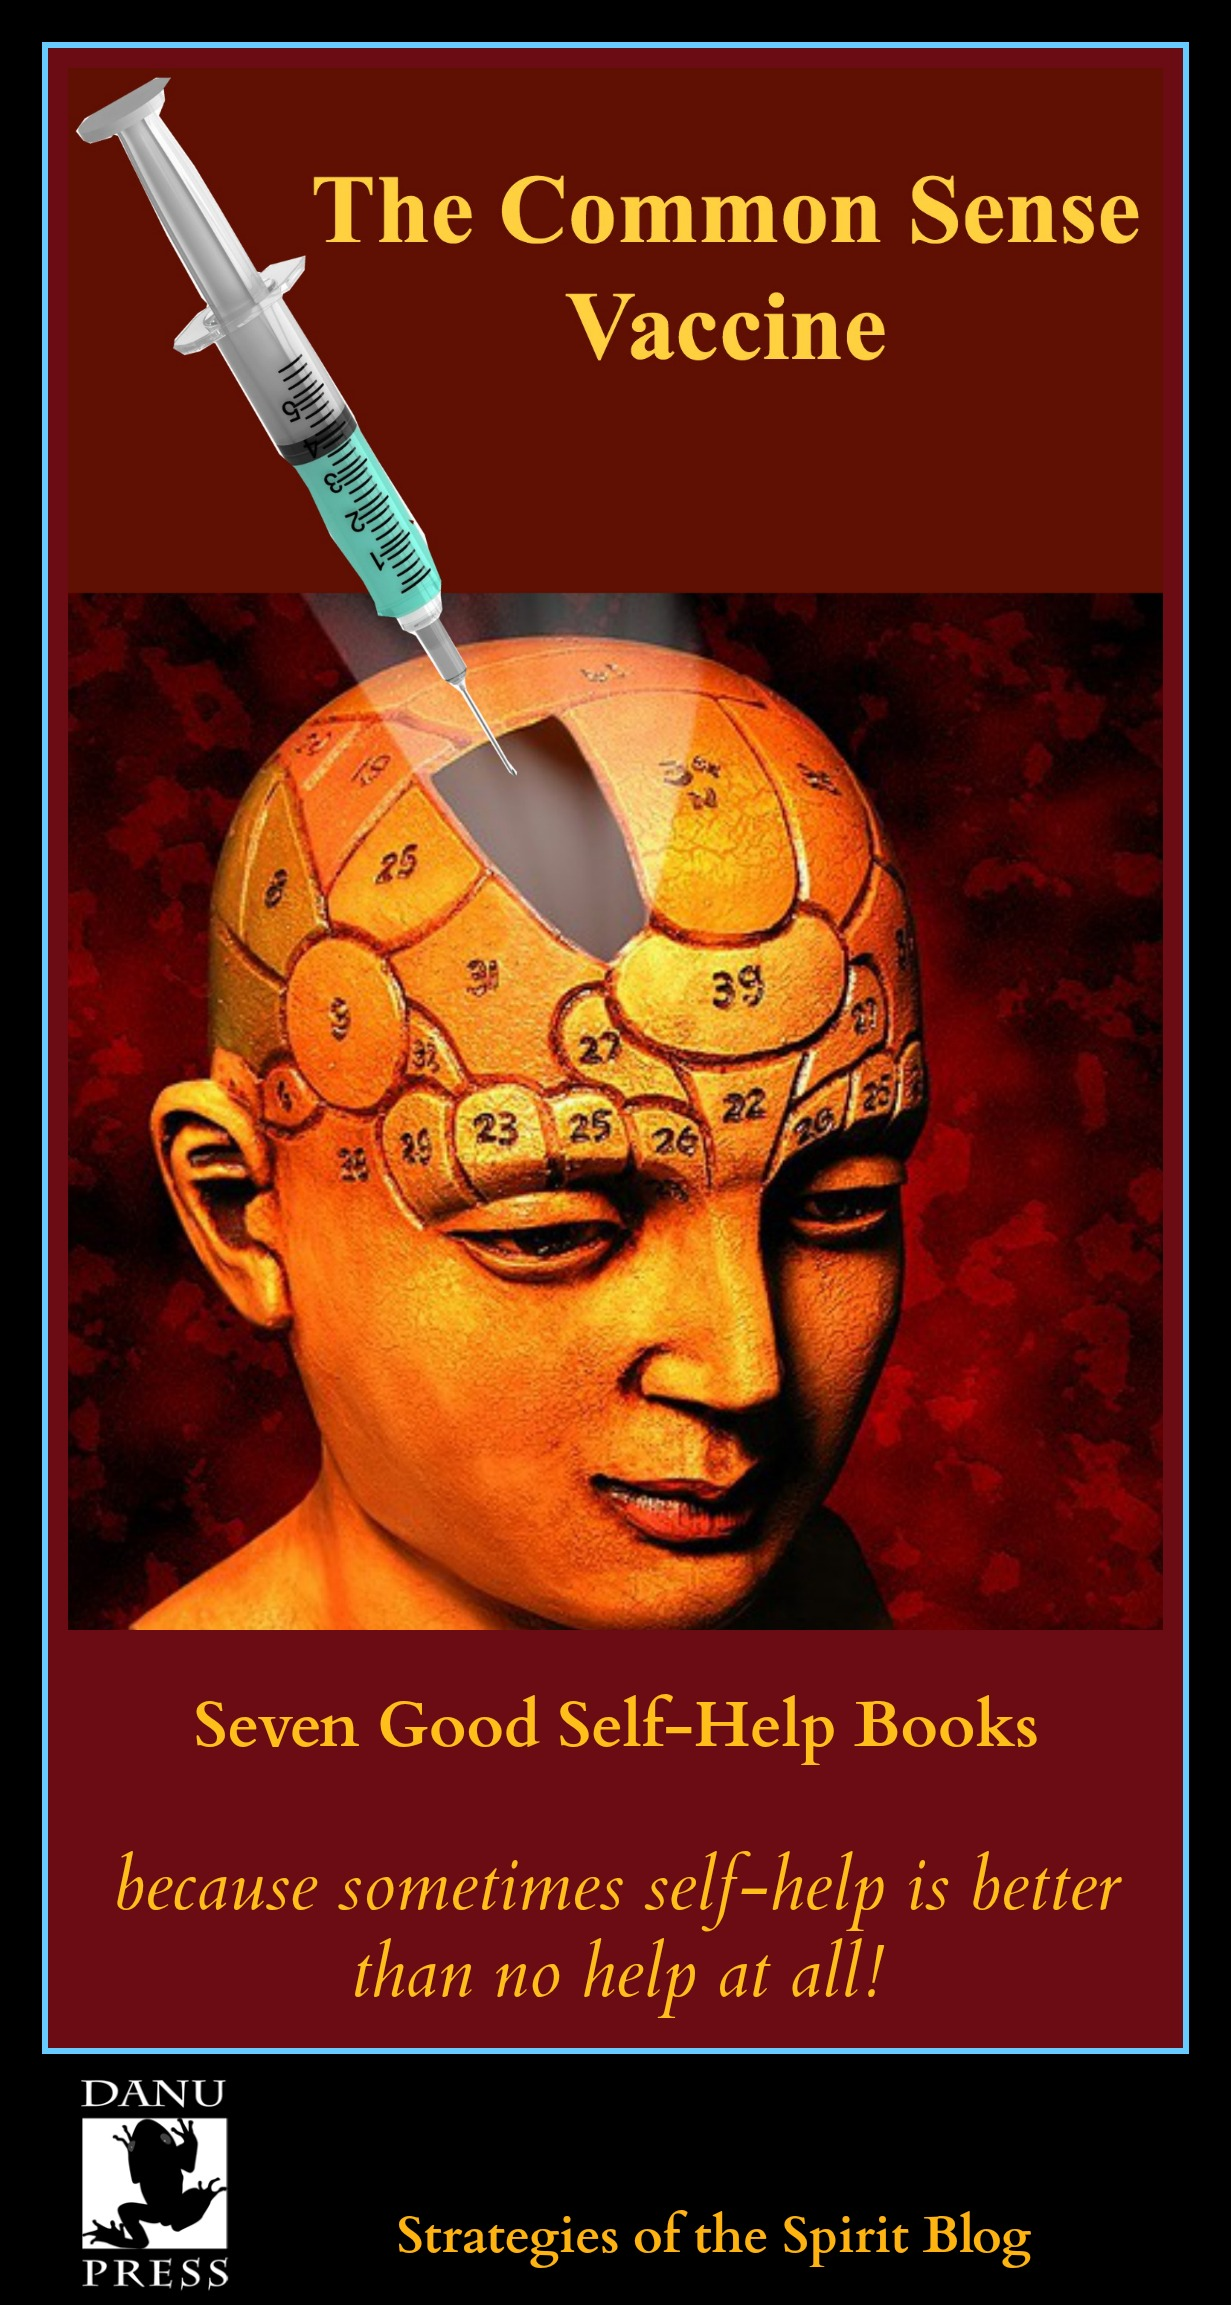 self-help books, common sense, good self-help book, strategies of the spirit, summer reading list